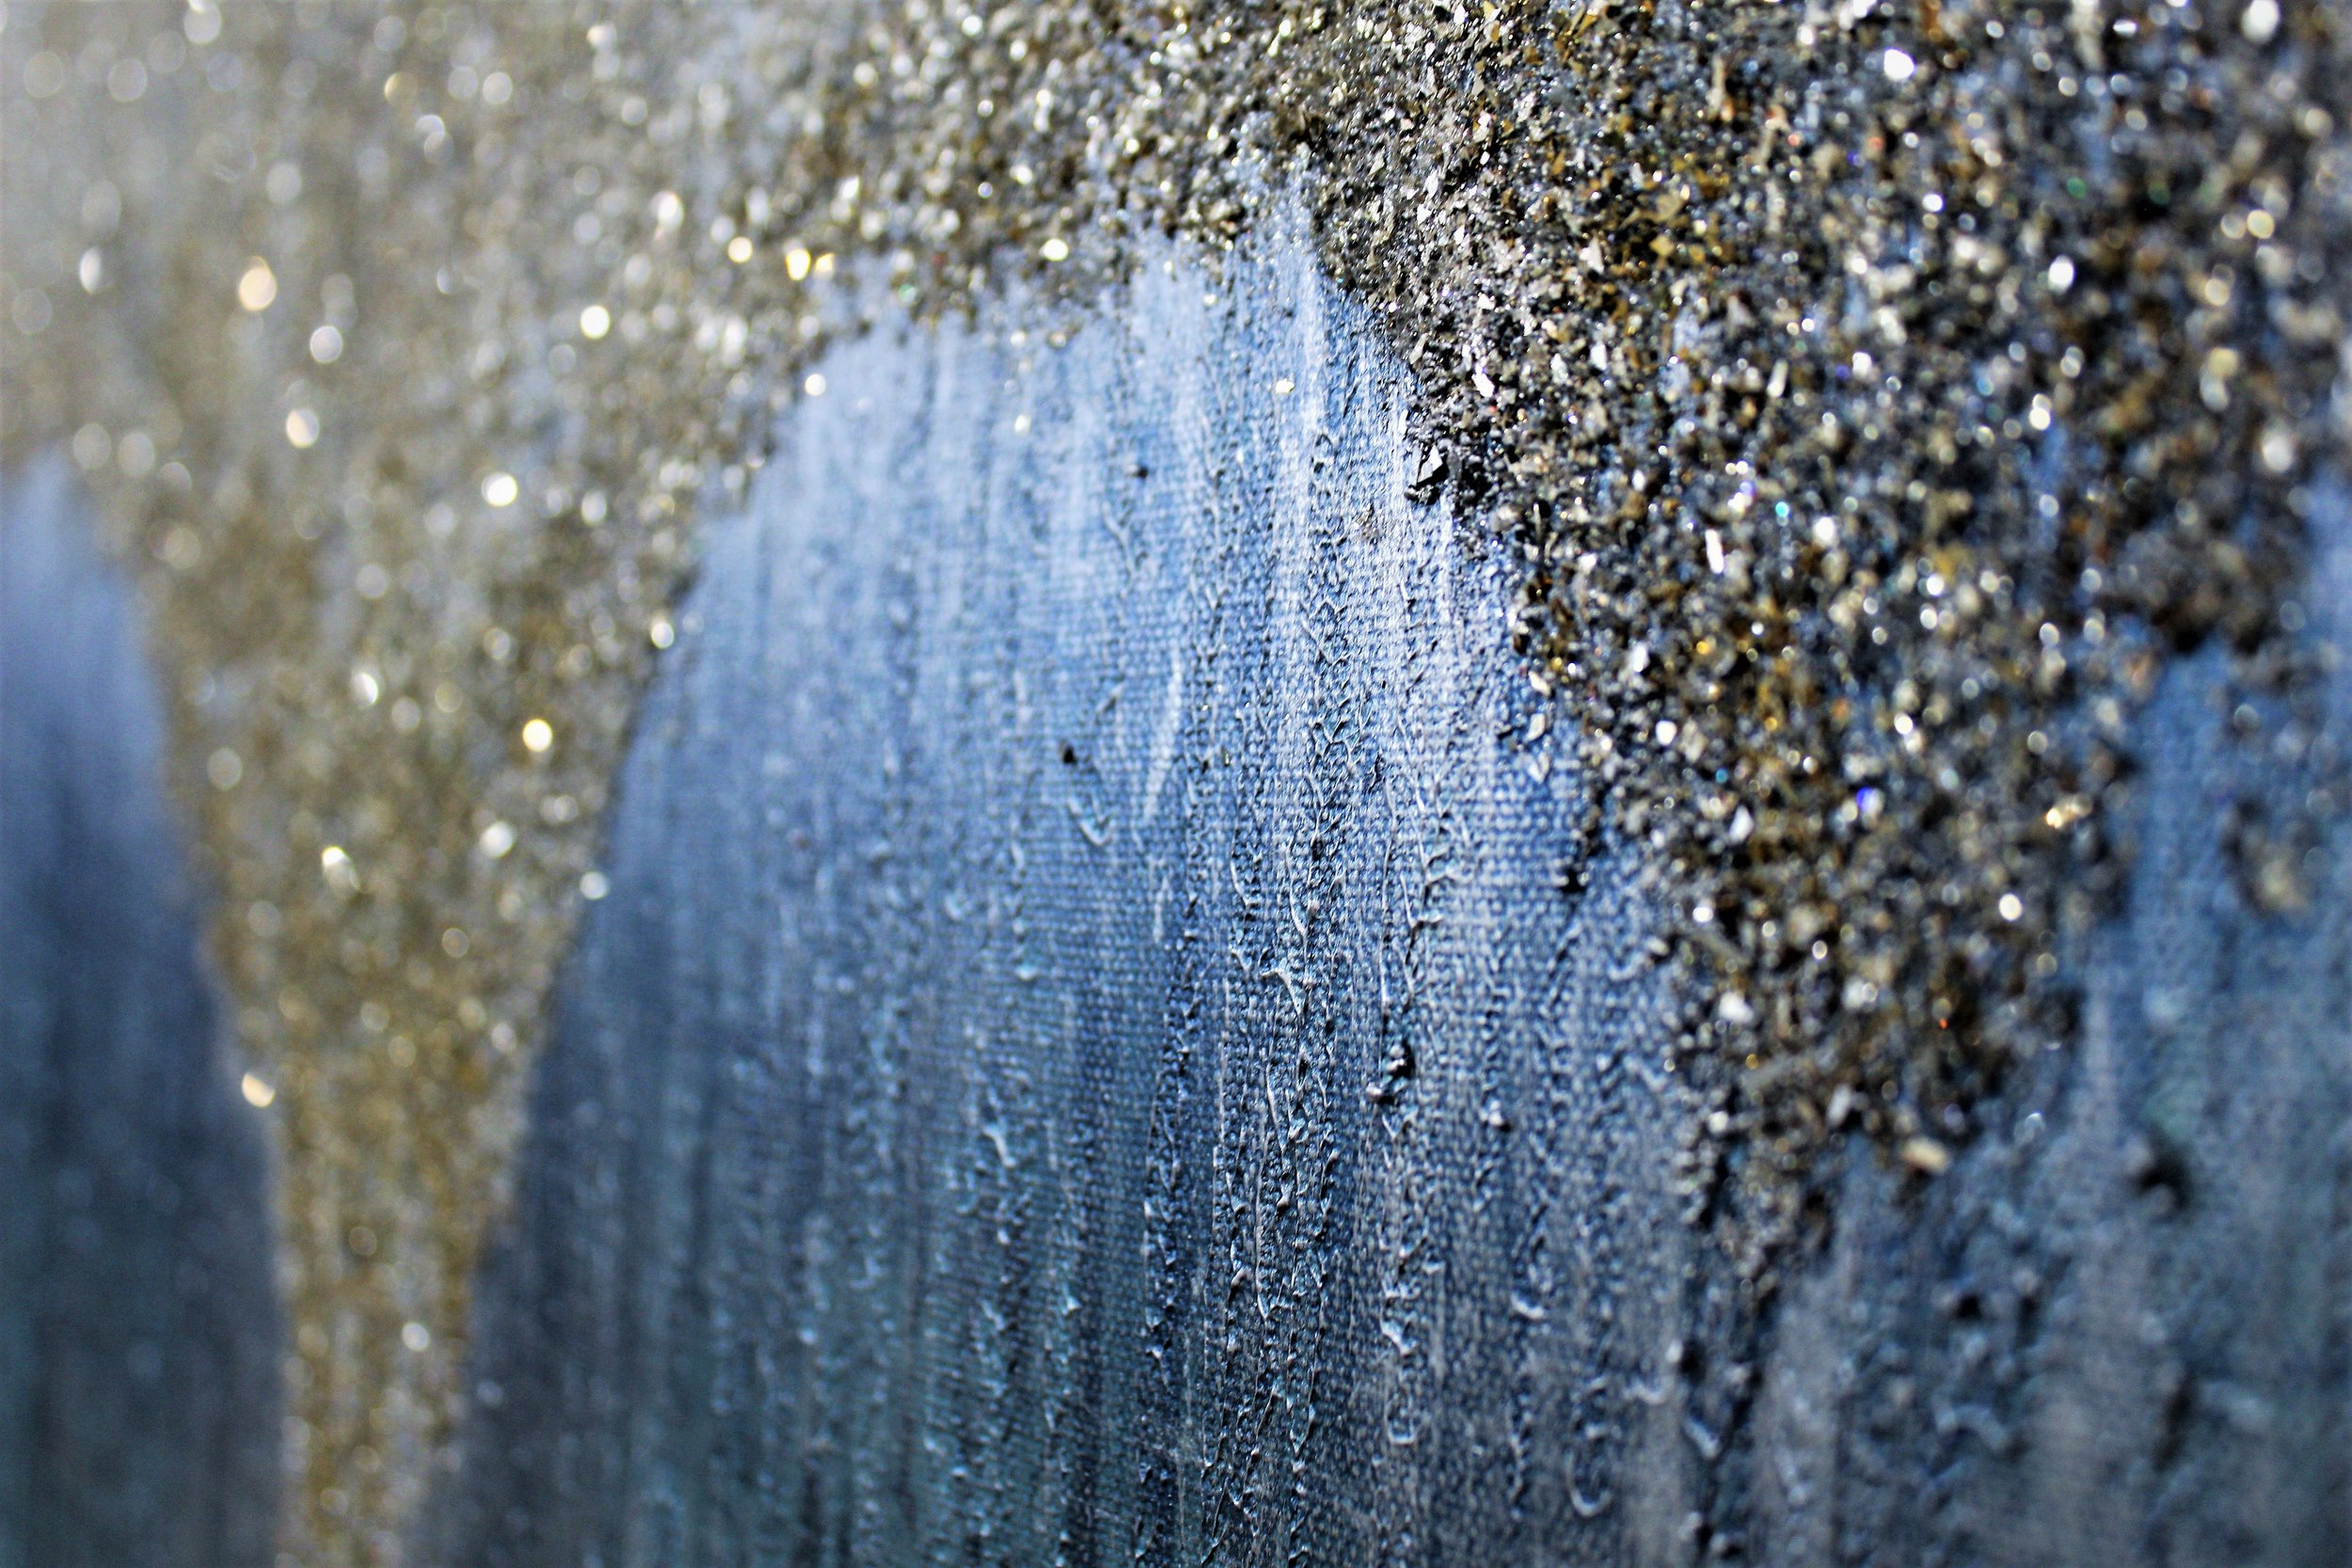 Detail shot of the stunning bits of texture and glam. This painting is a muted metallic silver and pale aqua with amazing bits of glass and glitter. $350 for this handmade 30 x 40 canvas by Painted Accent.